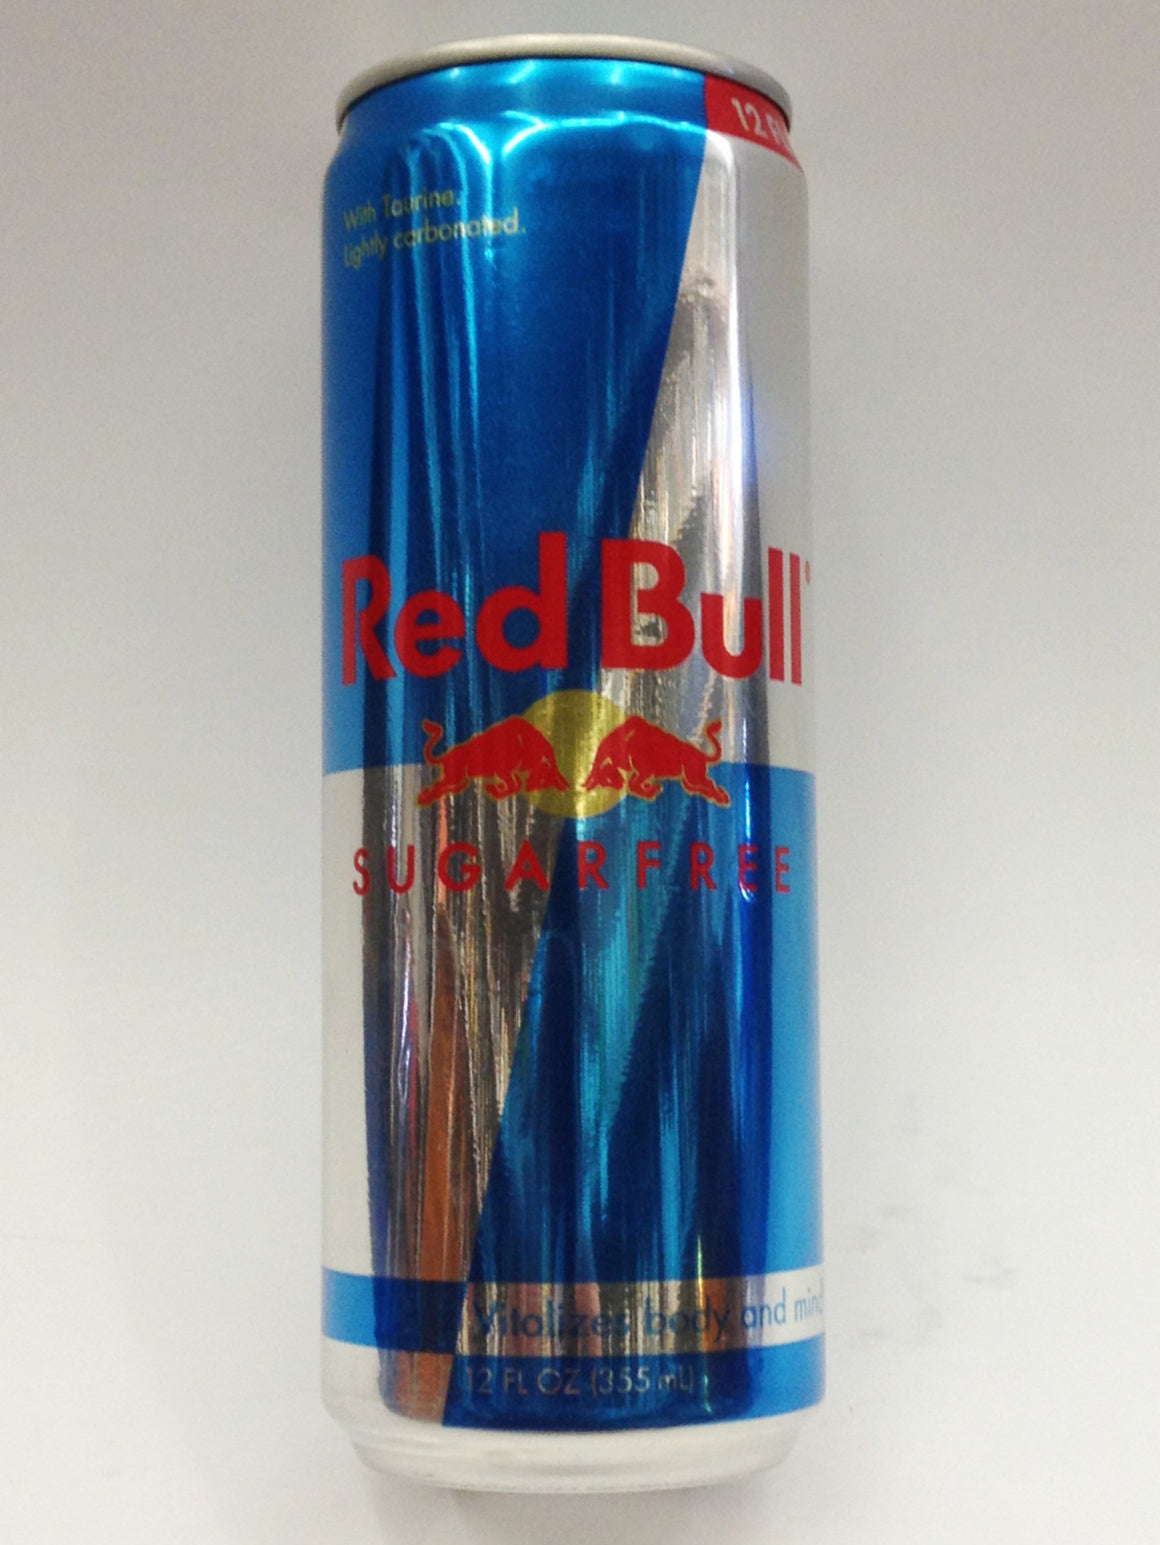 Red Bull Sugarfree Energy Drink 12oz